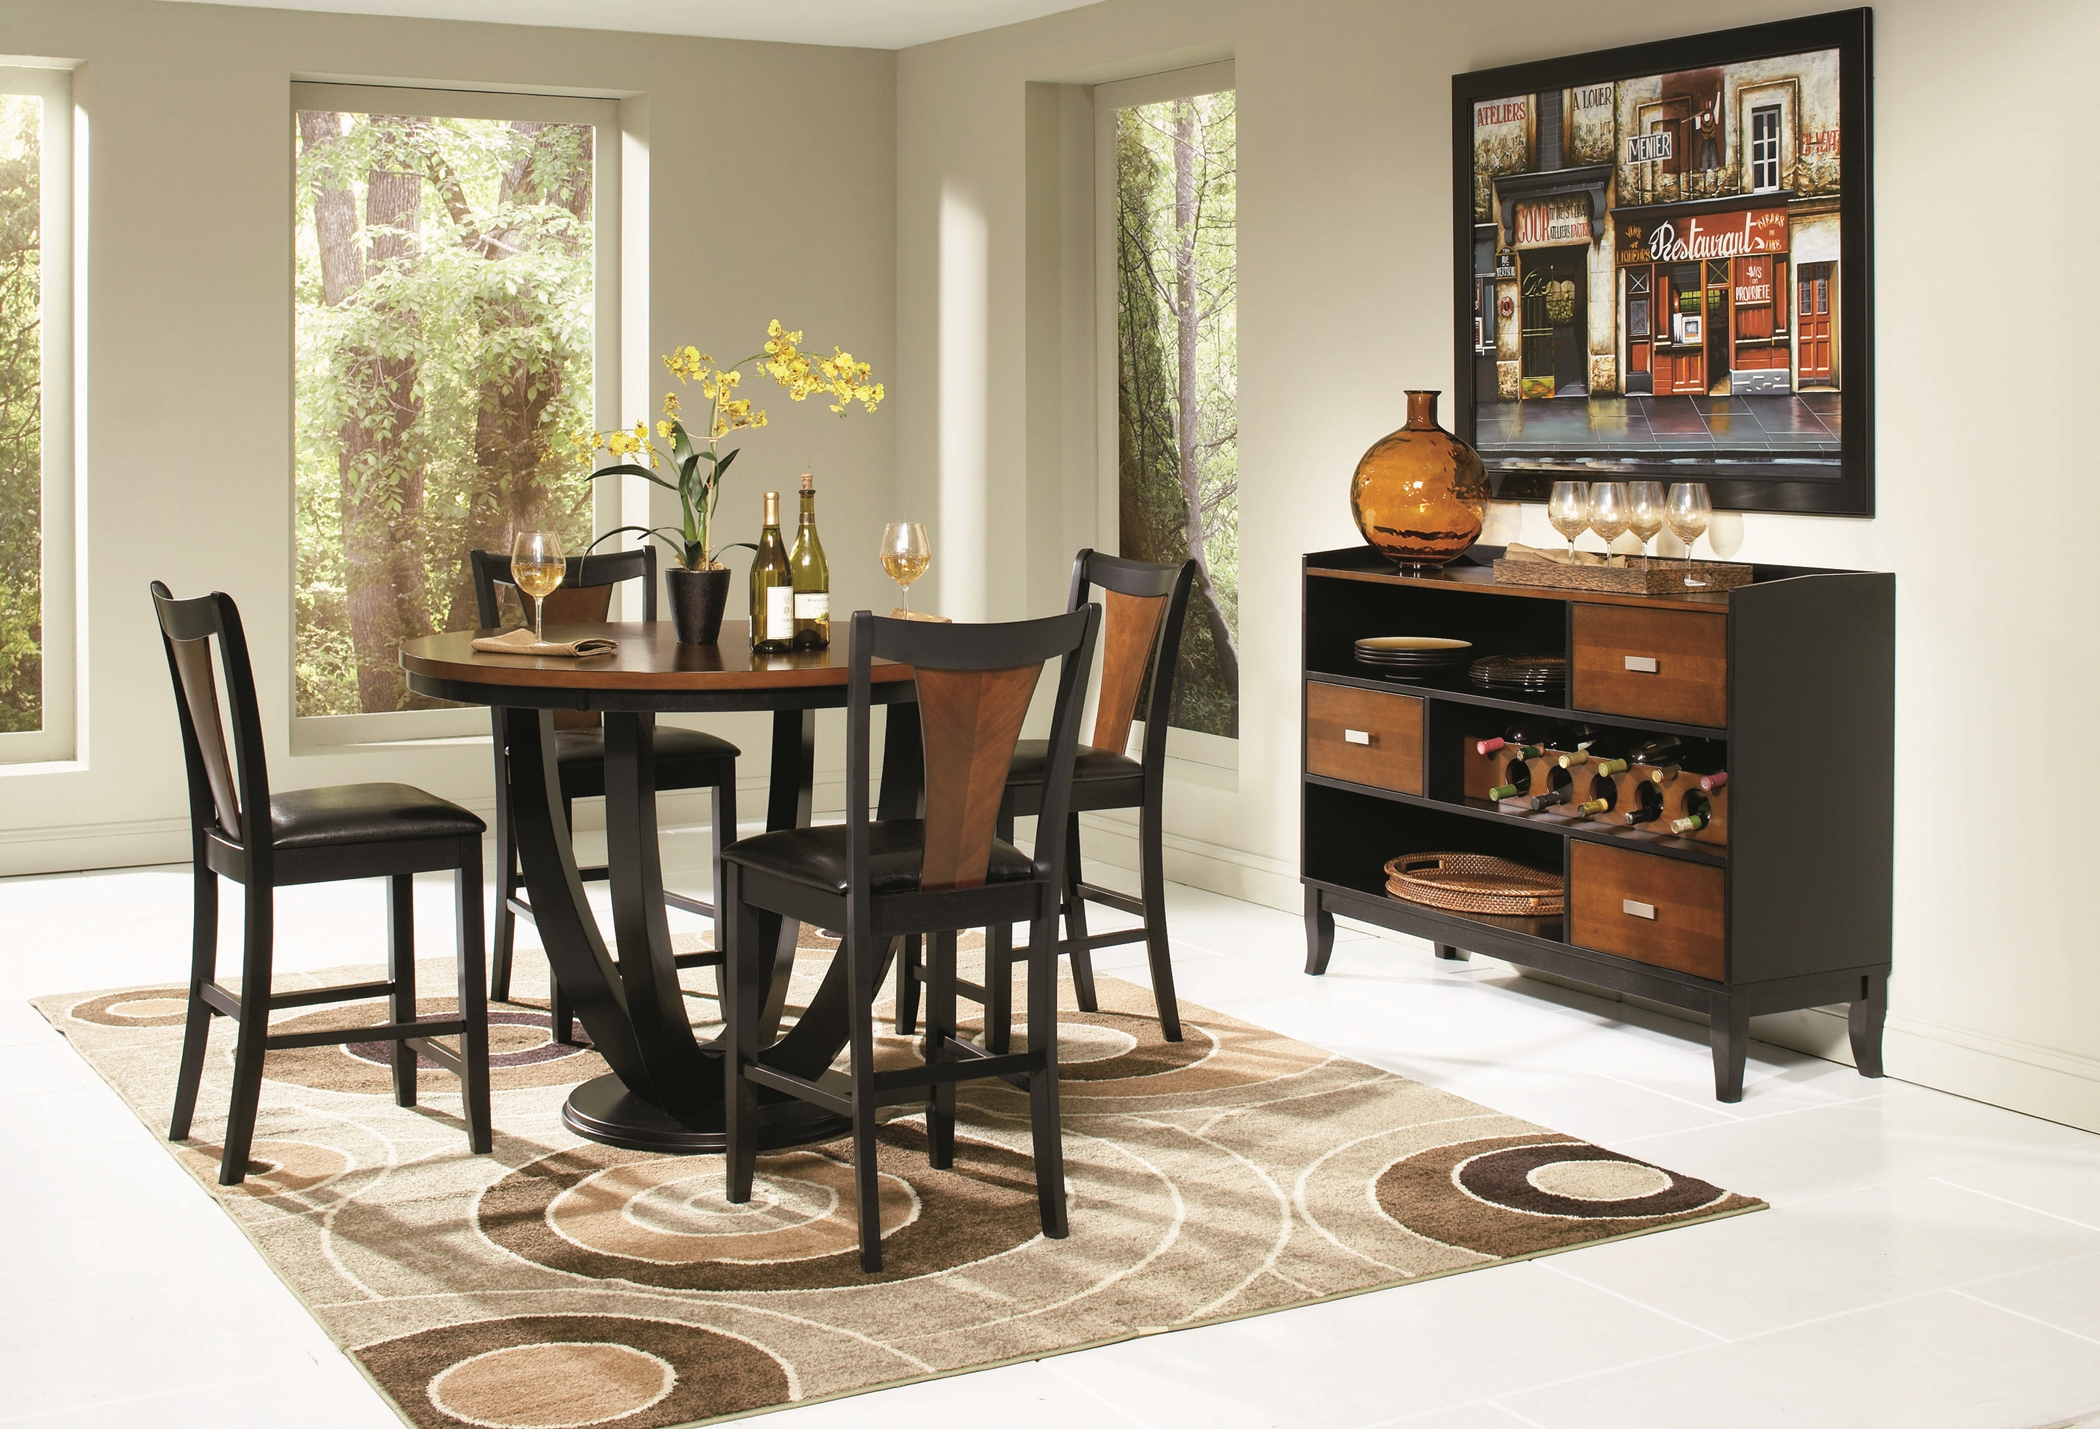 Boyer Amber and Black 5 Pc. Counter-Height Set